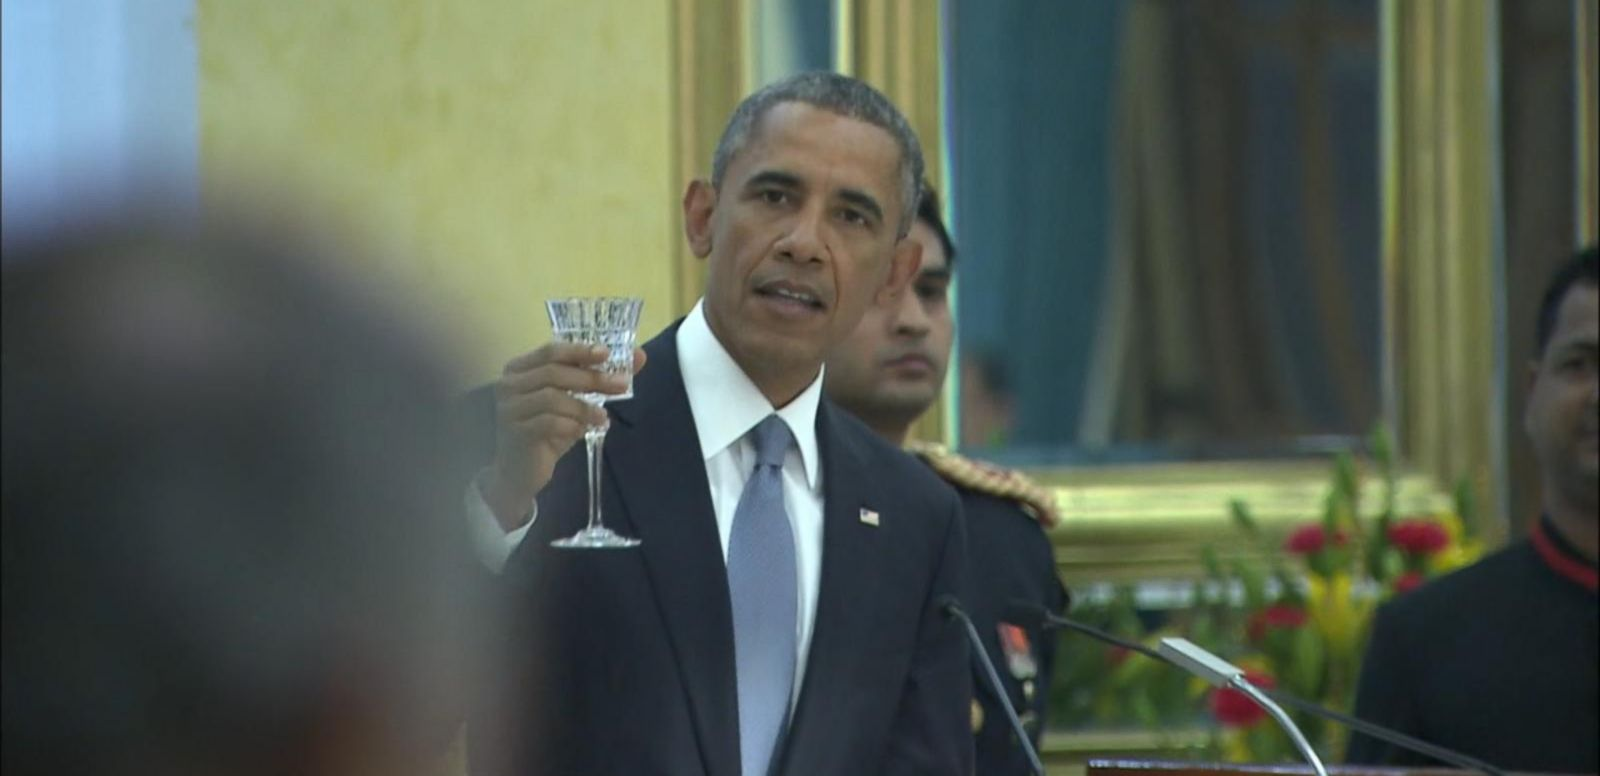 VIDEO: Obama Toasts Partnership Between India, US